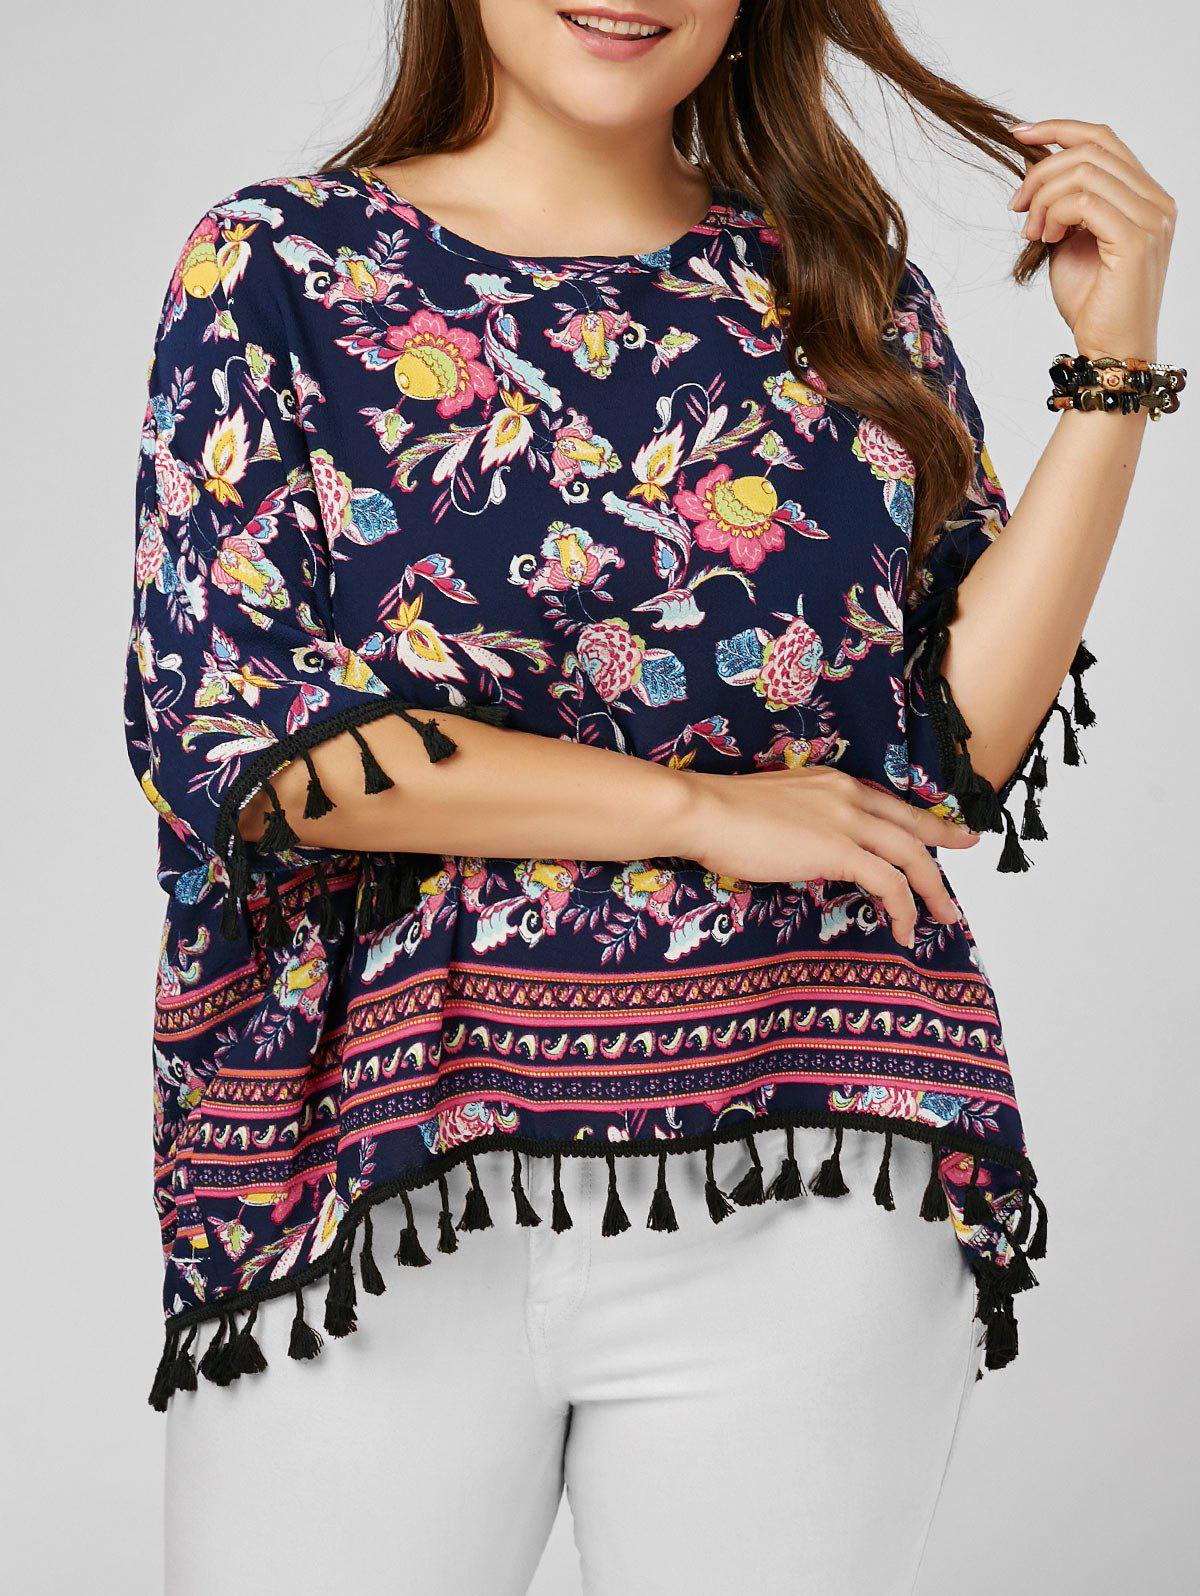 Tassel Dolman Sleeve Printed Plus Size Top - multicolorcolore ONE SIZE